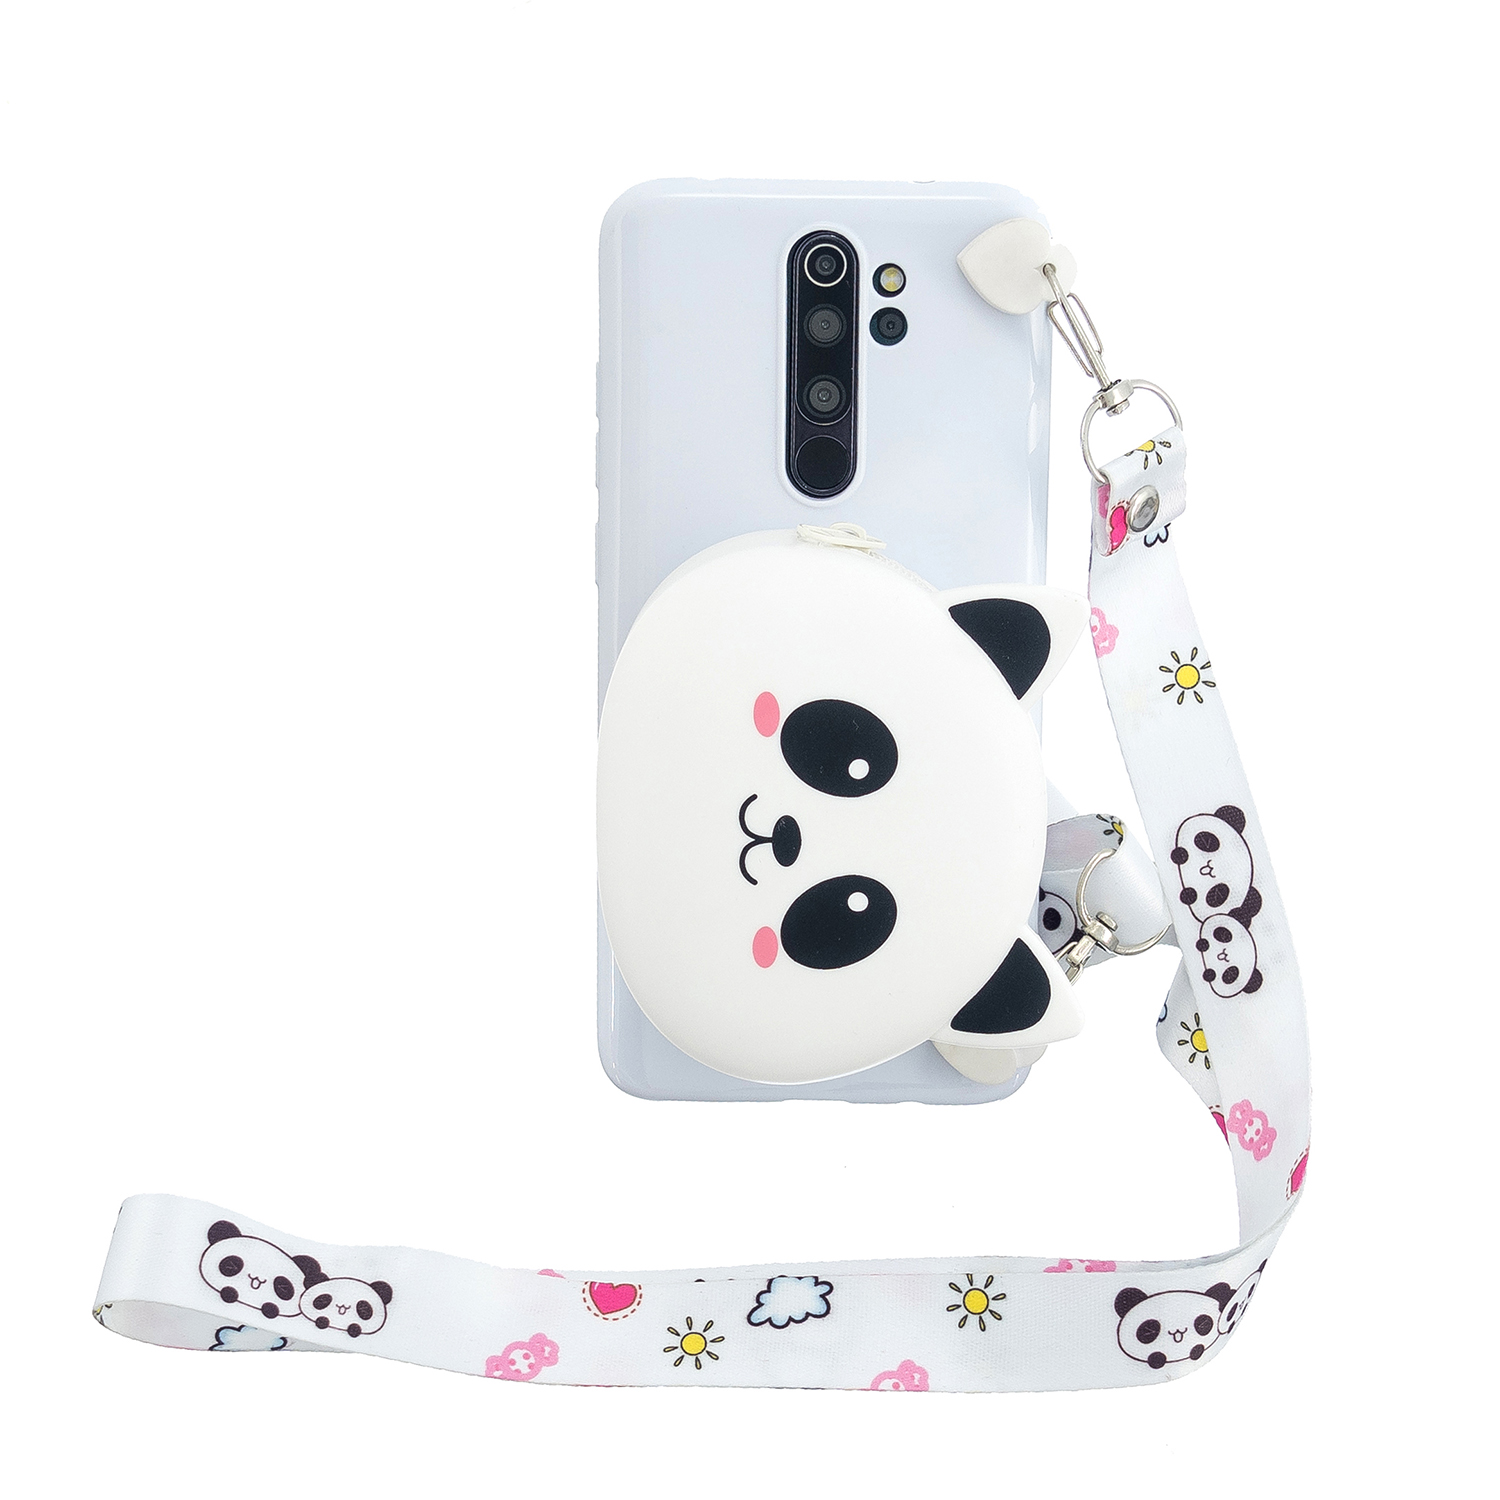 For Redmi Note 8/8T/8 Pro Cellphone Case Mobile Phone Shell Shockproof TPU Cover with Cartoon Cat Pig Panda Coin Purse Lovely Shoulder Starp  White